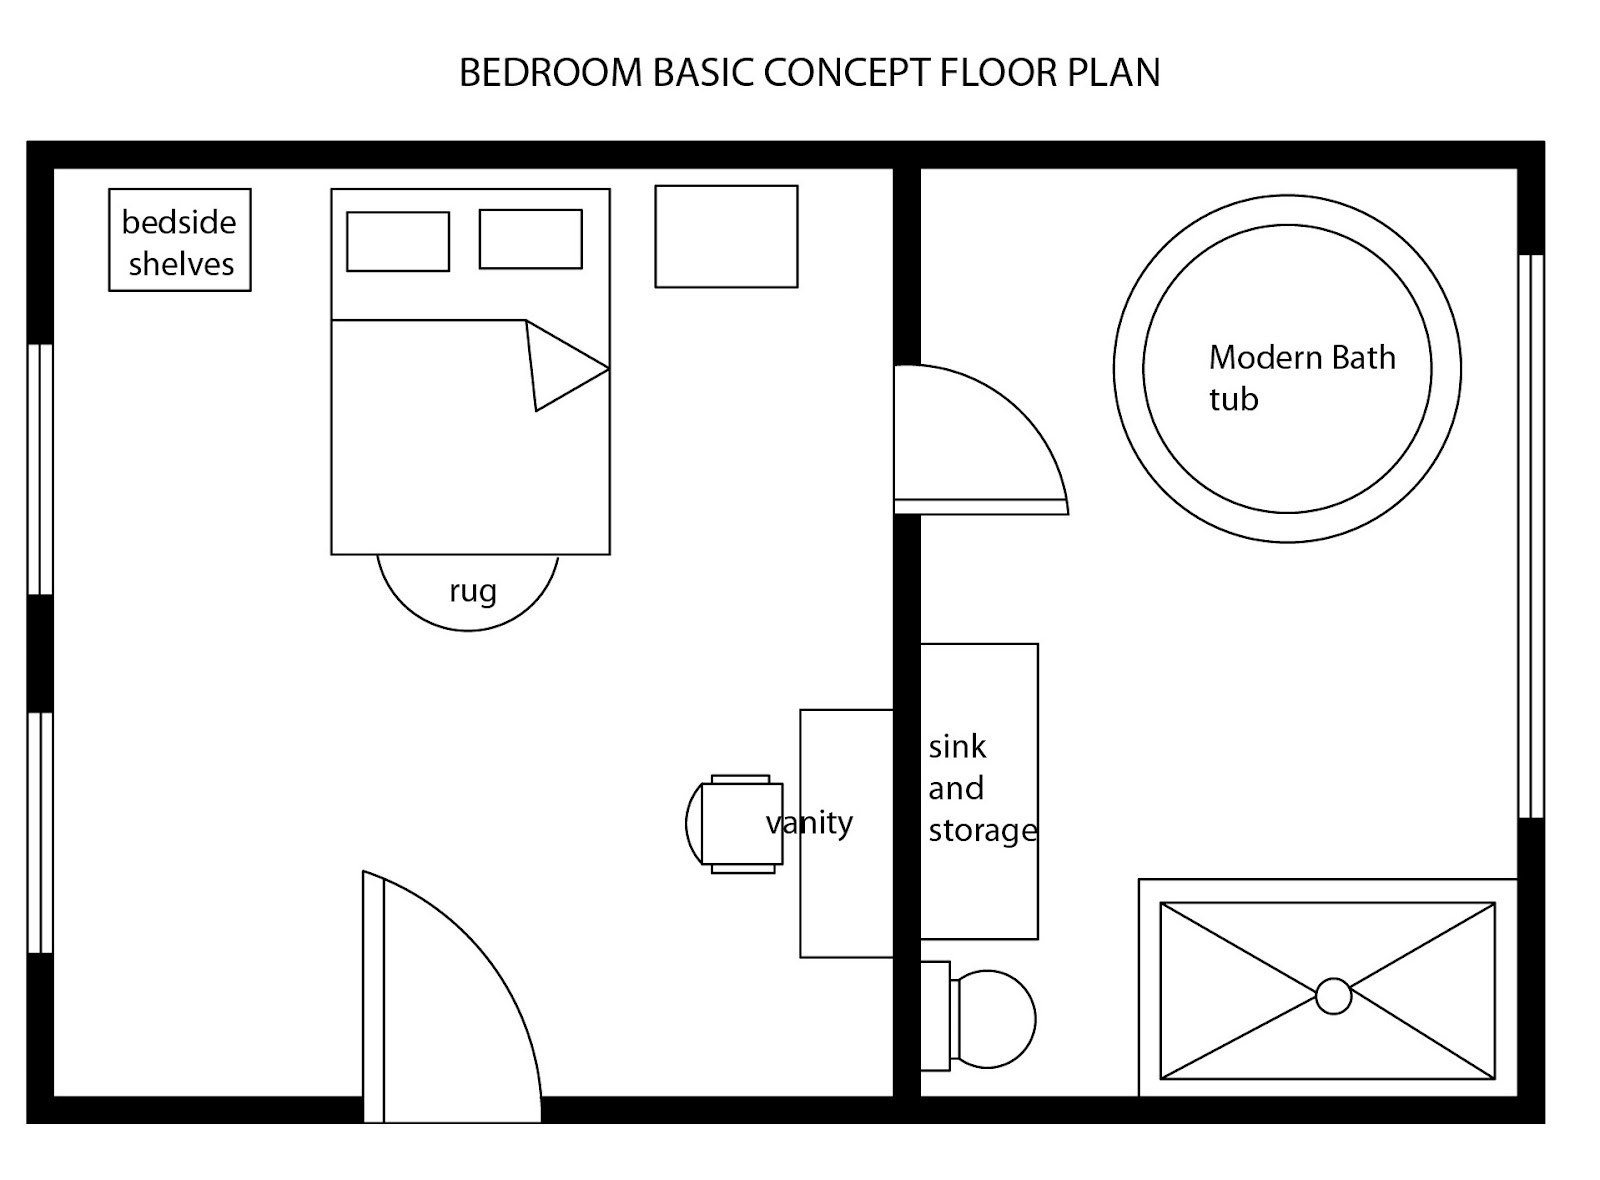 Interior design decor modern bedroom basic floor plan for Simple 3 bedroom floor plans